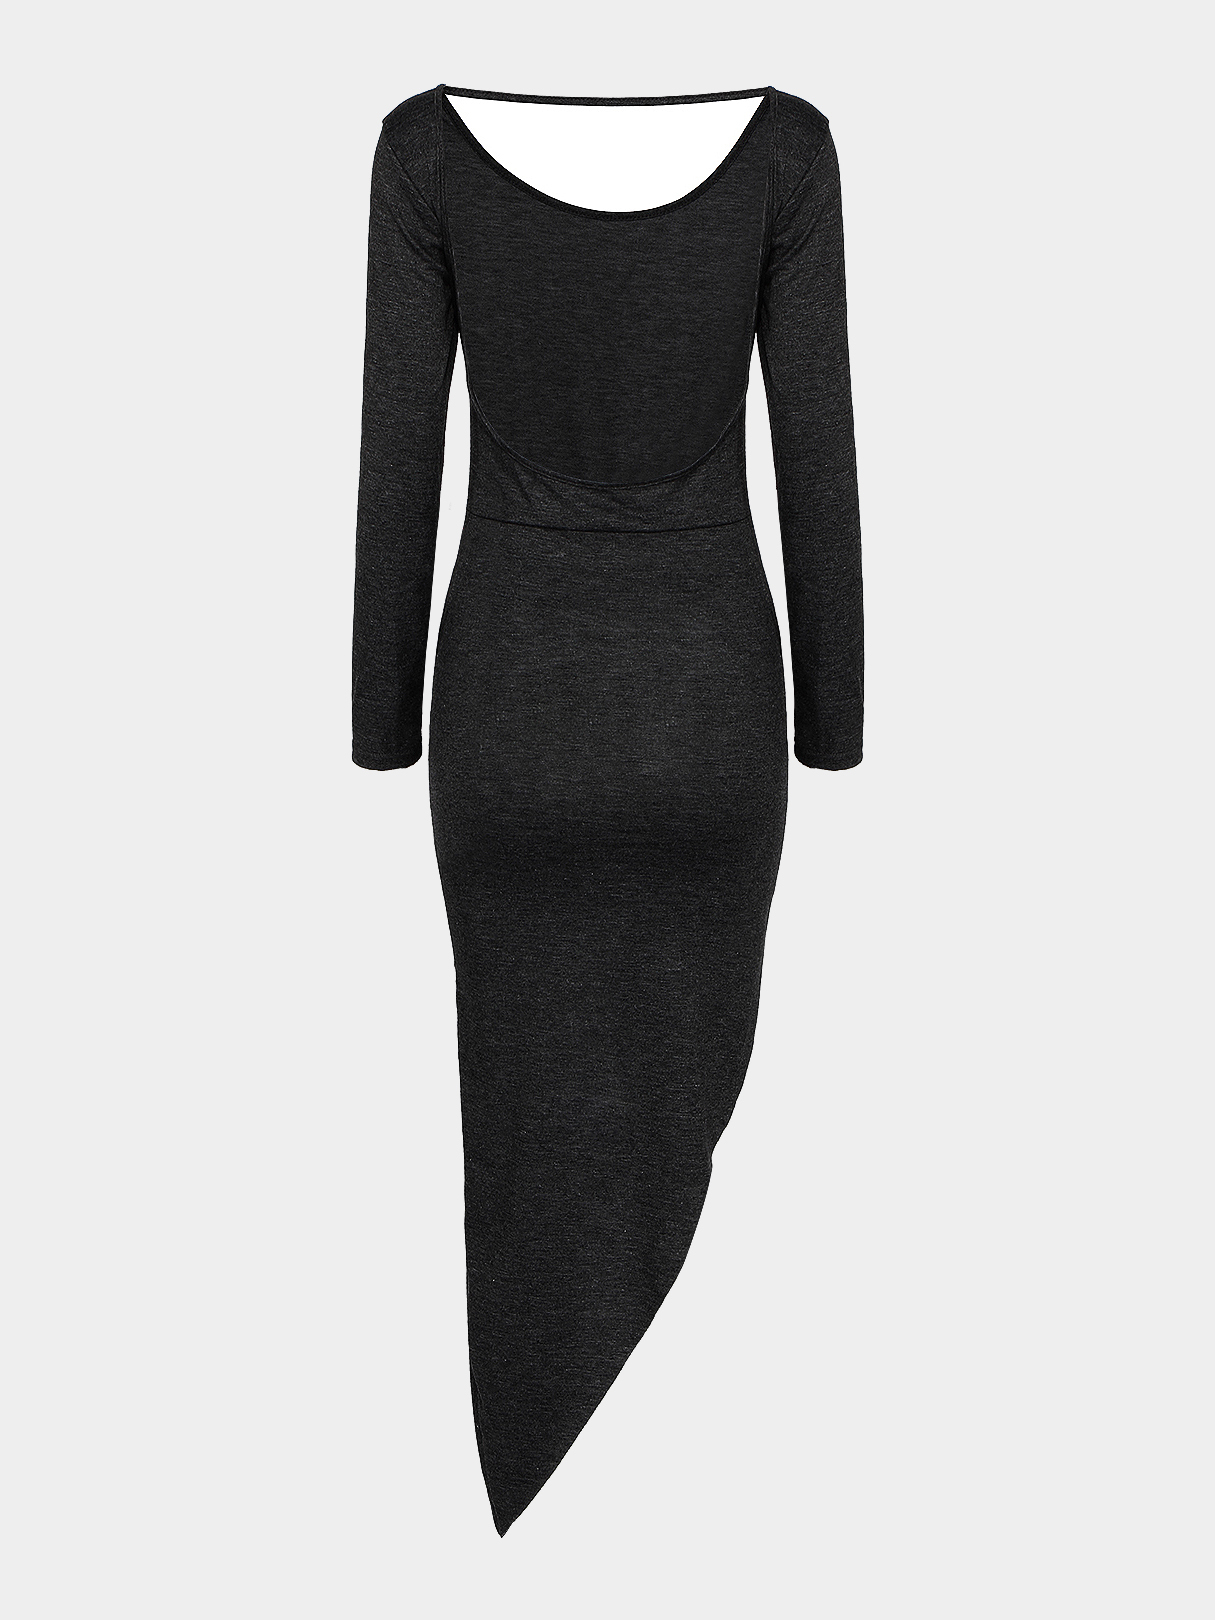 Black Asymmetric Party Dress With Cut Out Back